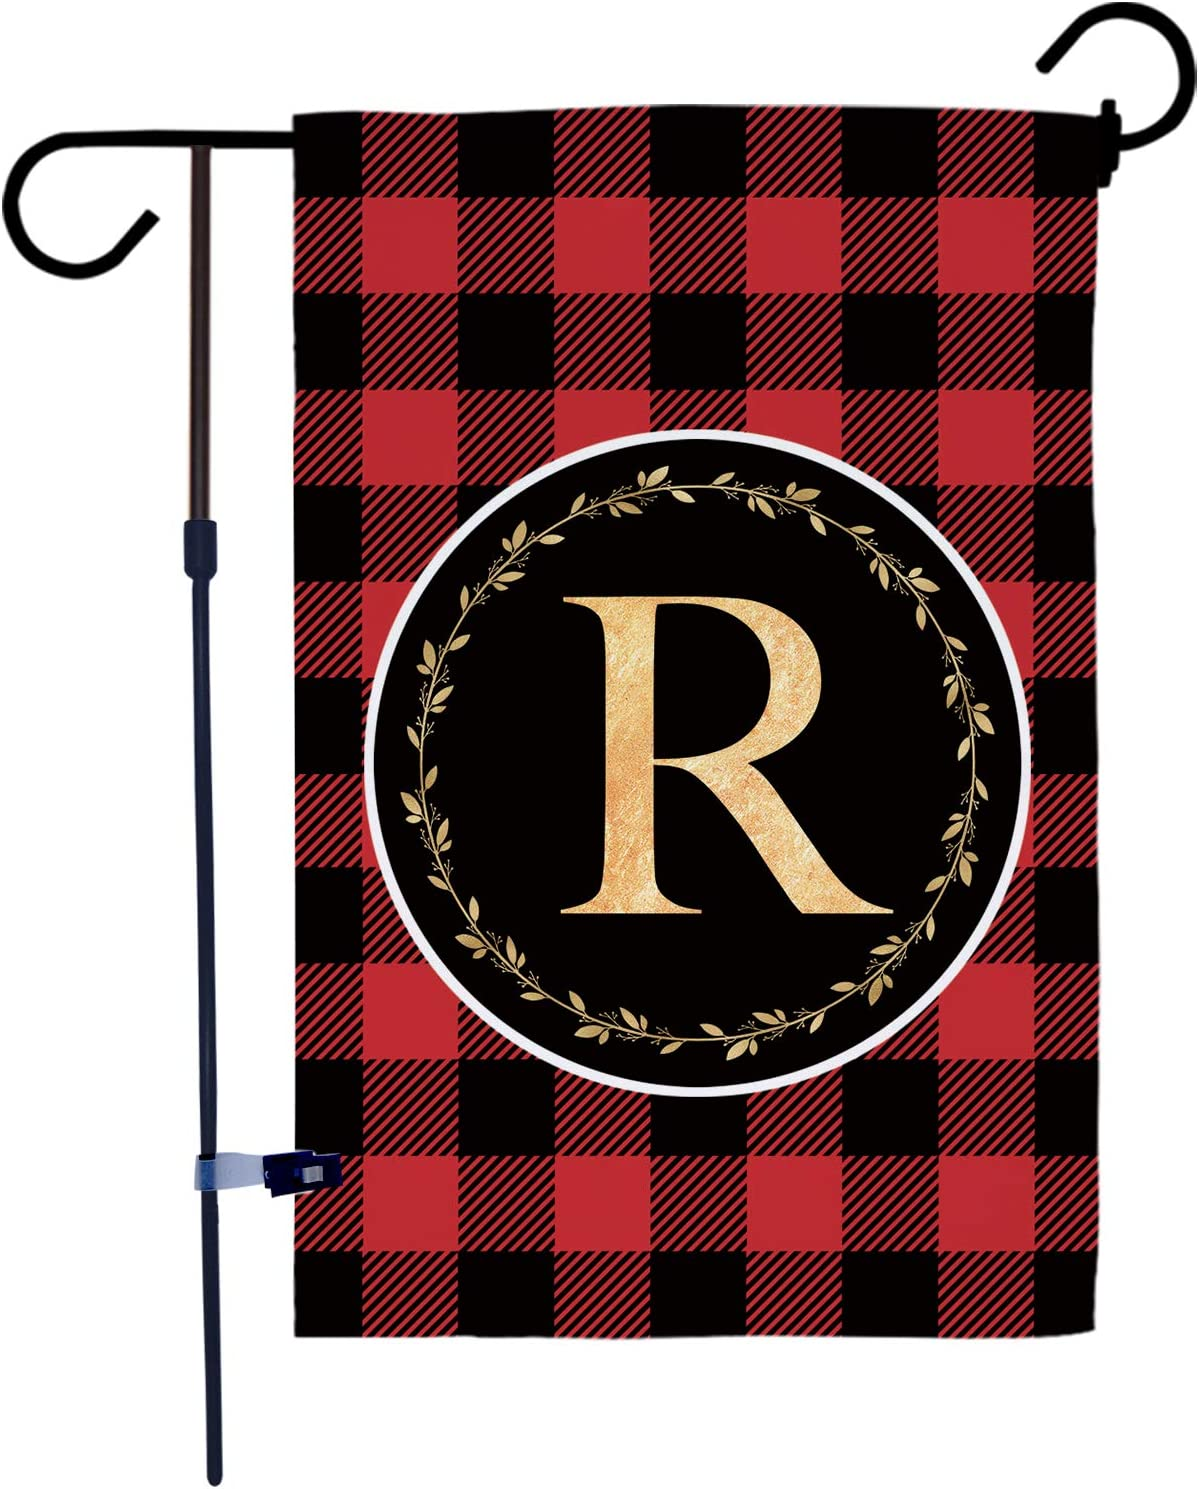 AKPOWER Small Garden Flag Black and Red Plaid Check Vertical Double Sided Farmhouse Burlap Yard Outdoor Decor Classic Monogram Letter 12.5 x 18 Inch R